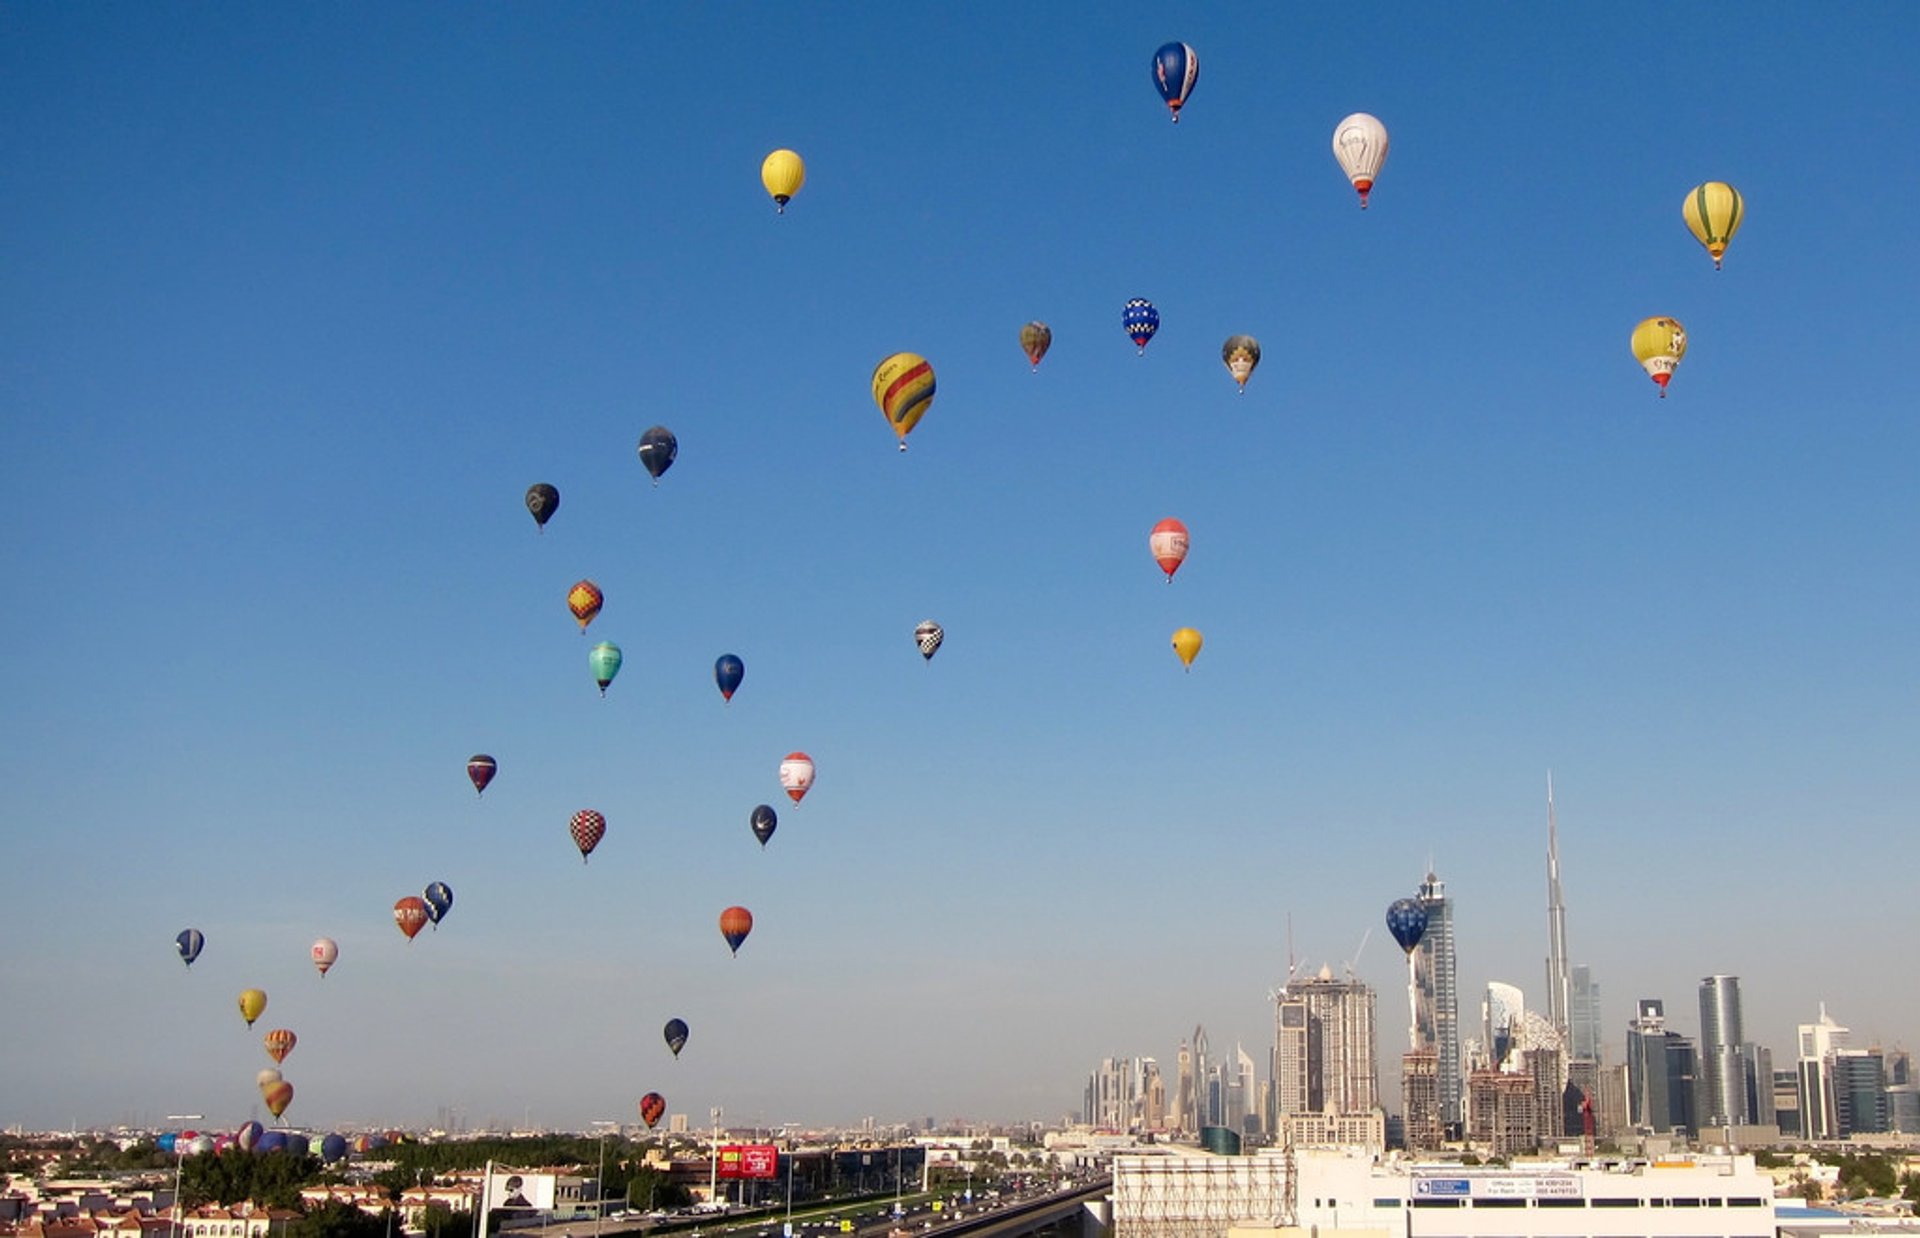 Ballooning in Dubai - Best Season 2020